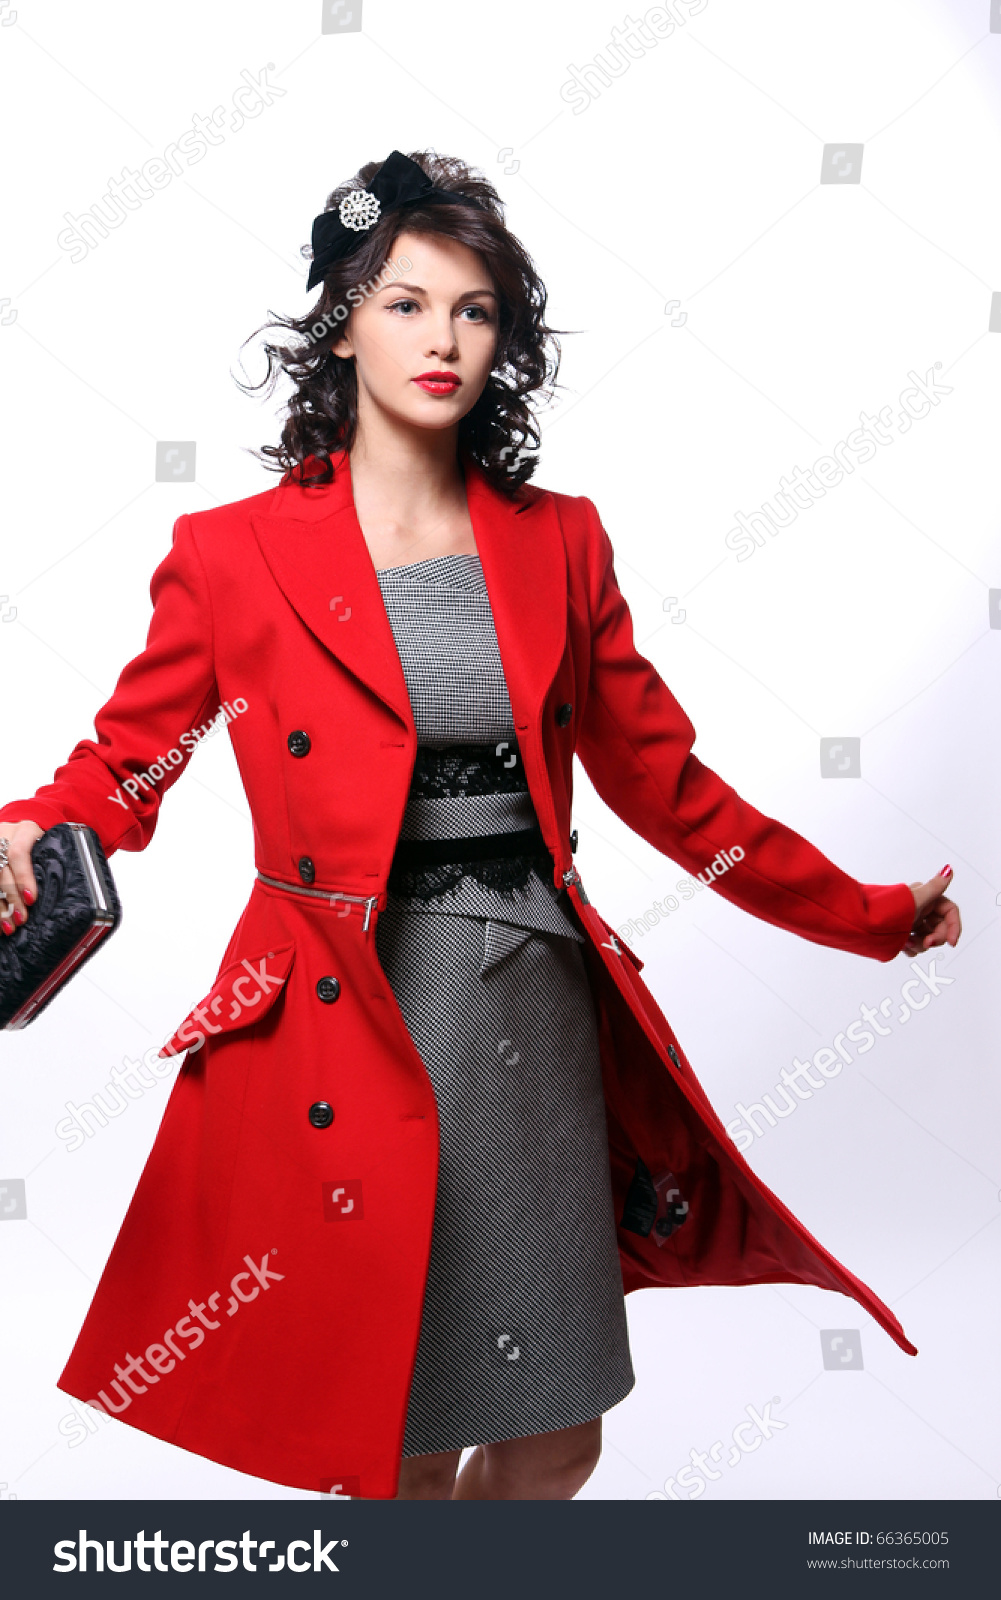 Beautiful Young Woman Red Coat Posing Stock Photo 66365005